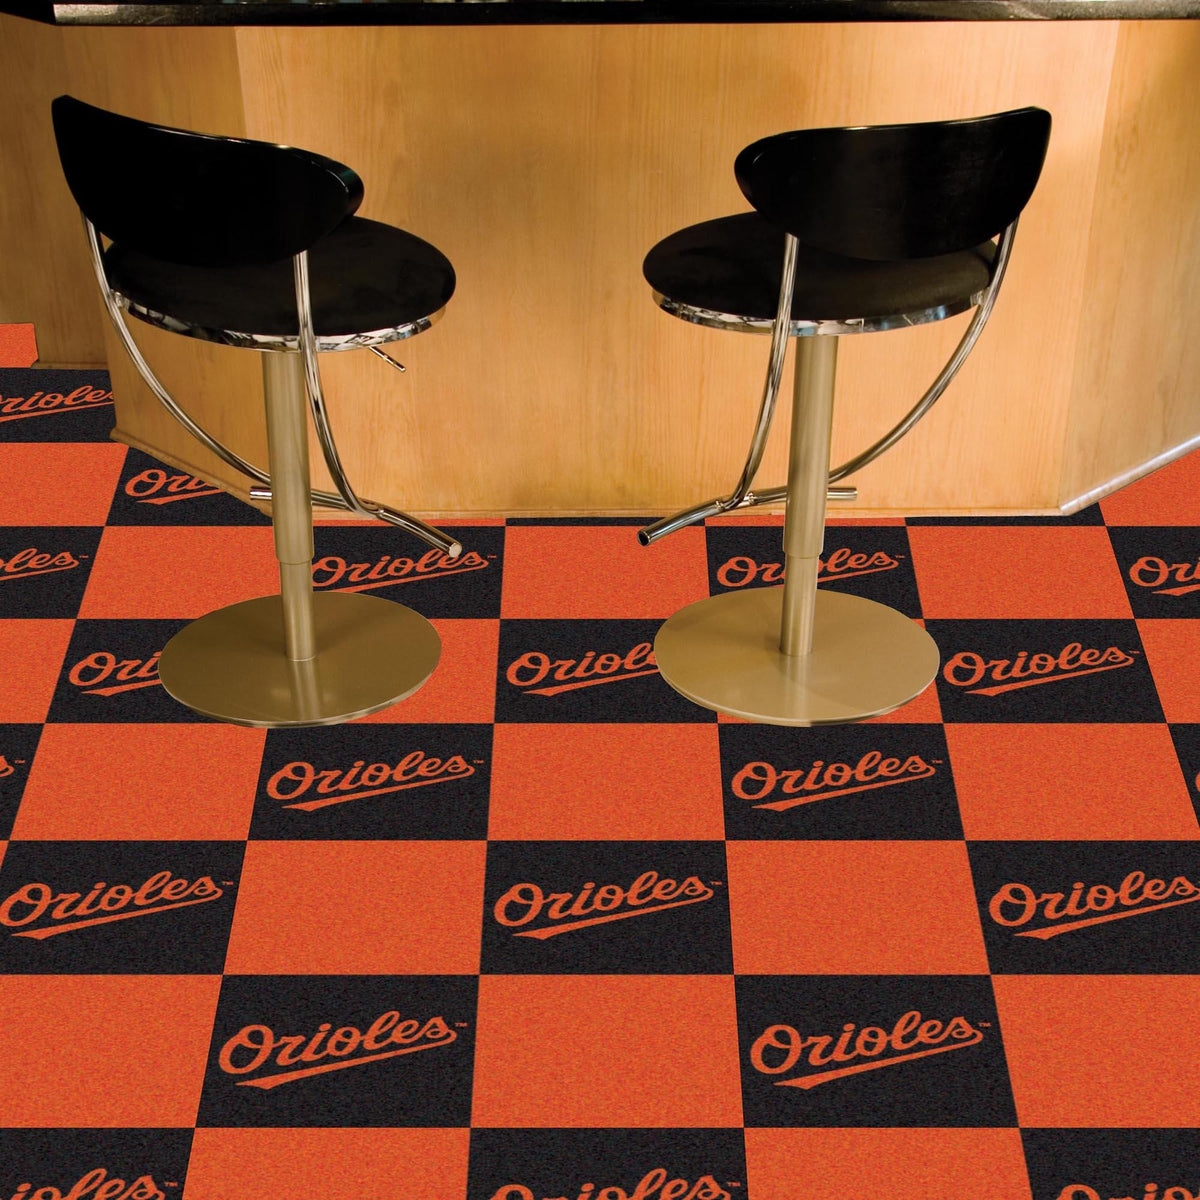 MLB - Team Carpet Tiles MLB Mats, Carpet Tile Flooring, Team Carpet Tiles, MLB, Home Fan Mats Baltimore Orioles